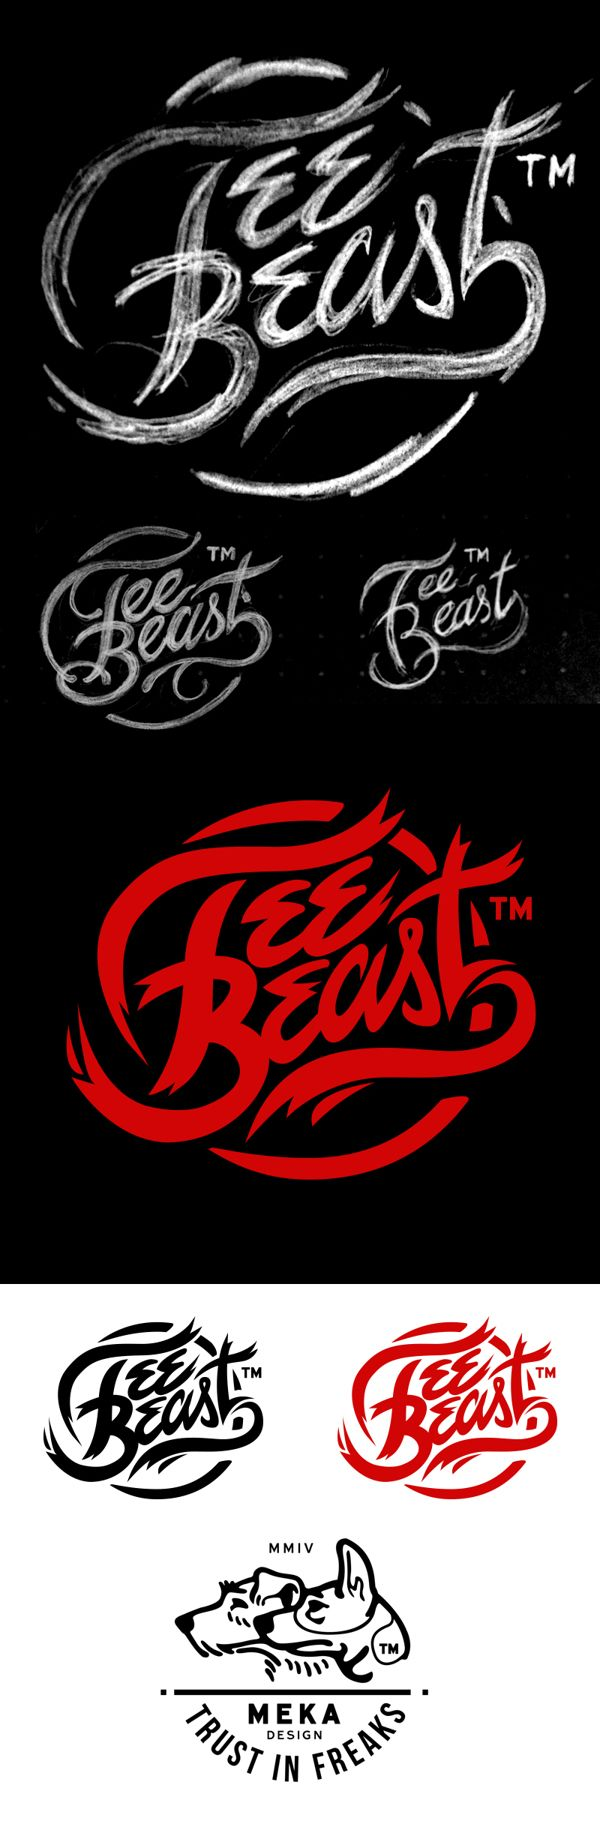 Tee Beast Logo Design by MEKA